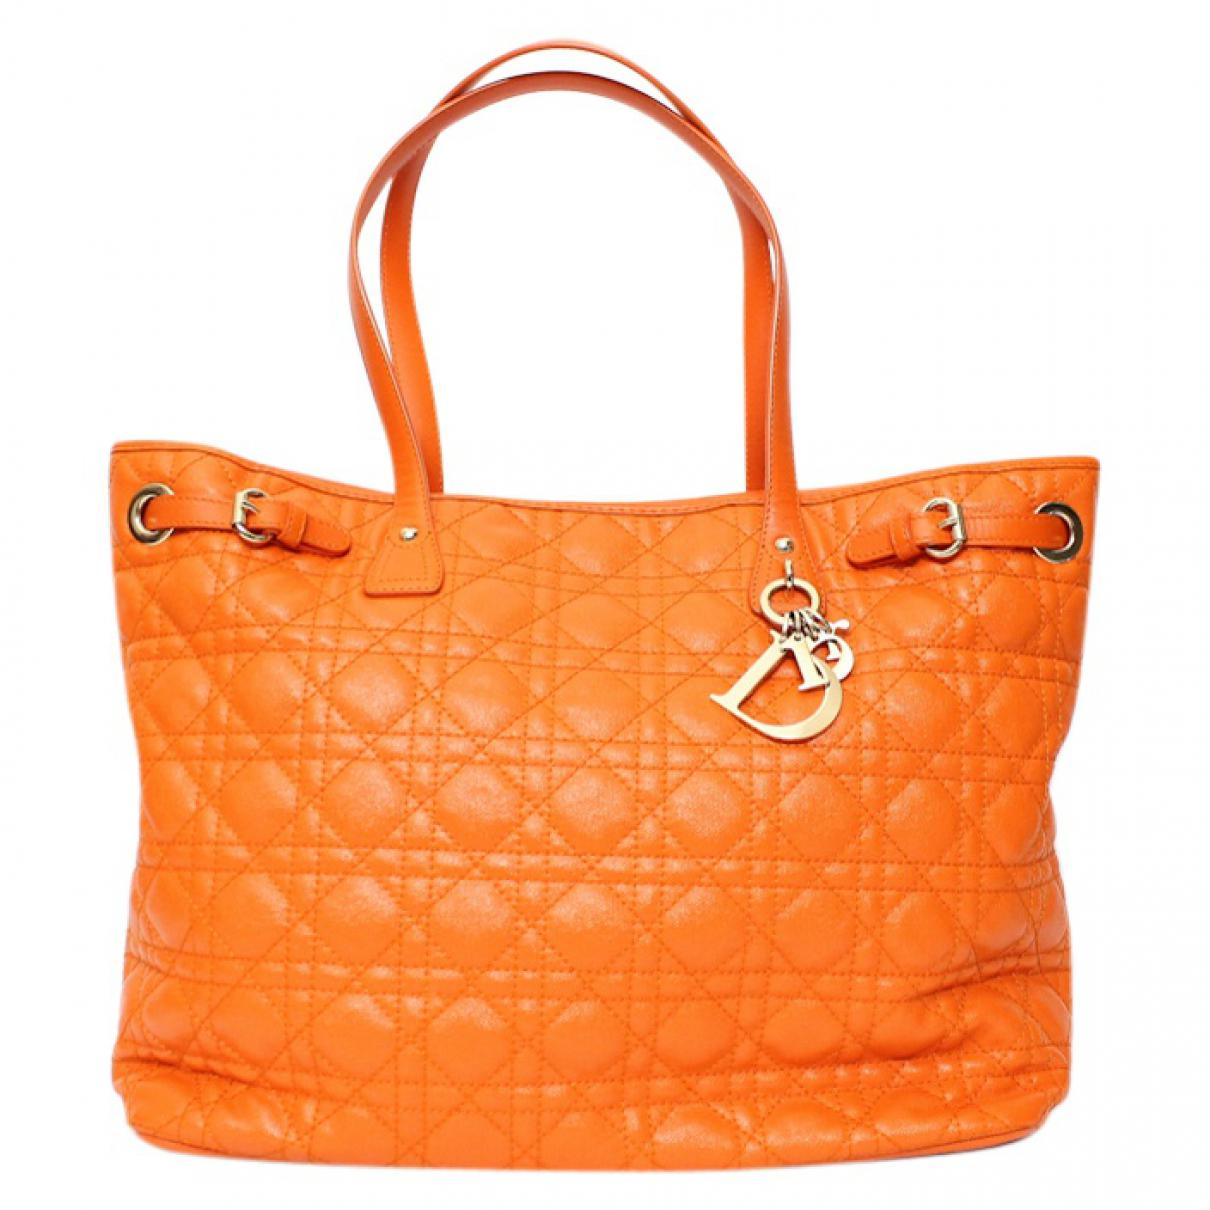 Dior Pre-owned - Dior Panarea leather tote Y6yIZmQHaO